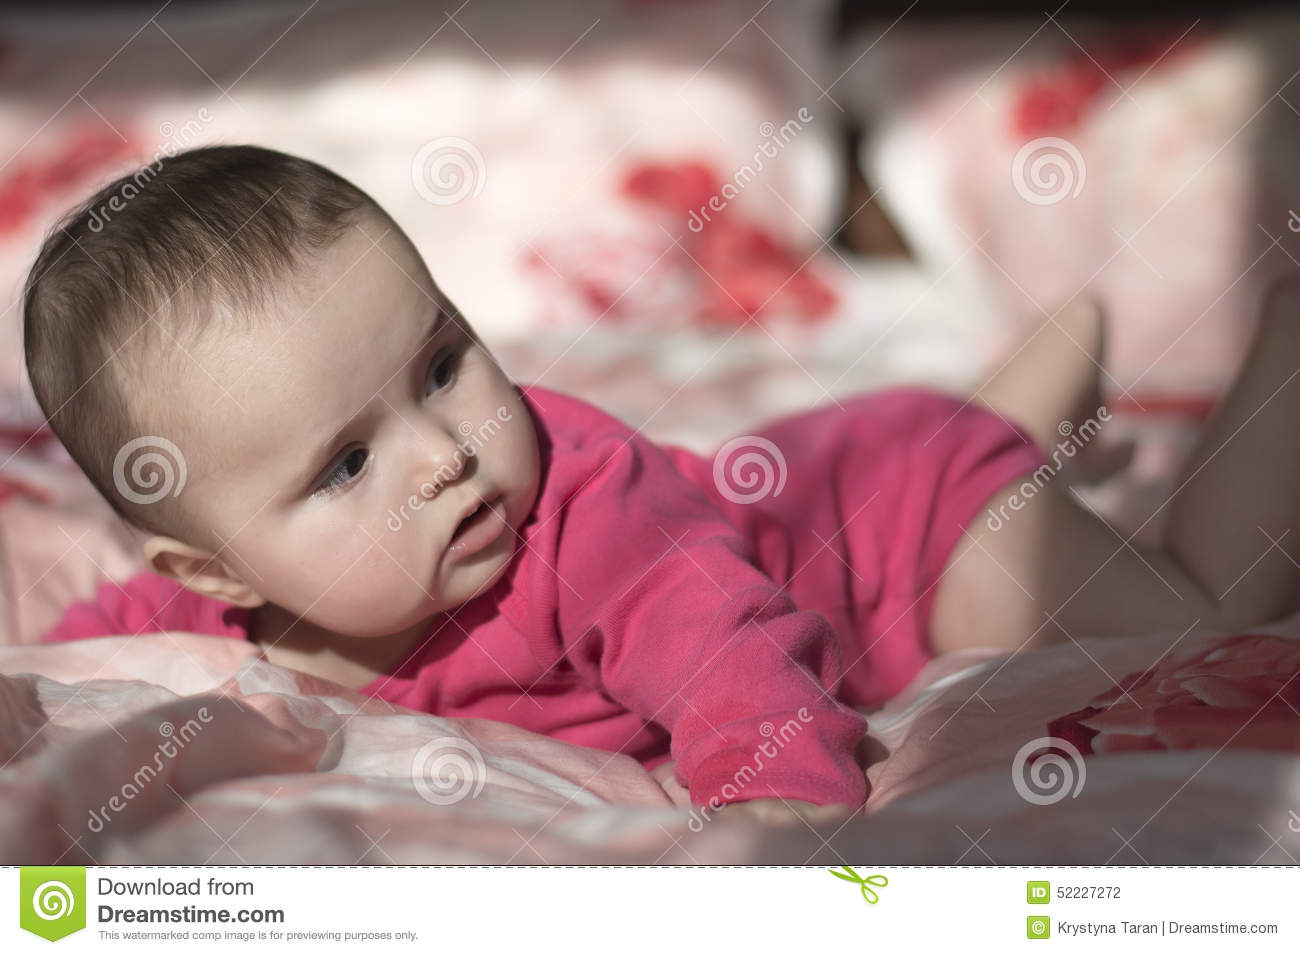 Portrait Of Small Baby Girl Stock Photo Image 52227272